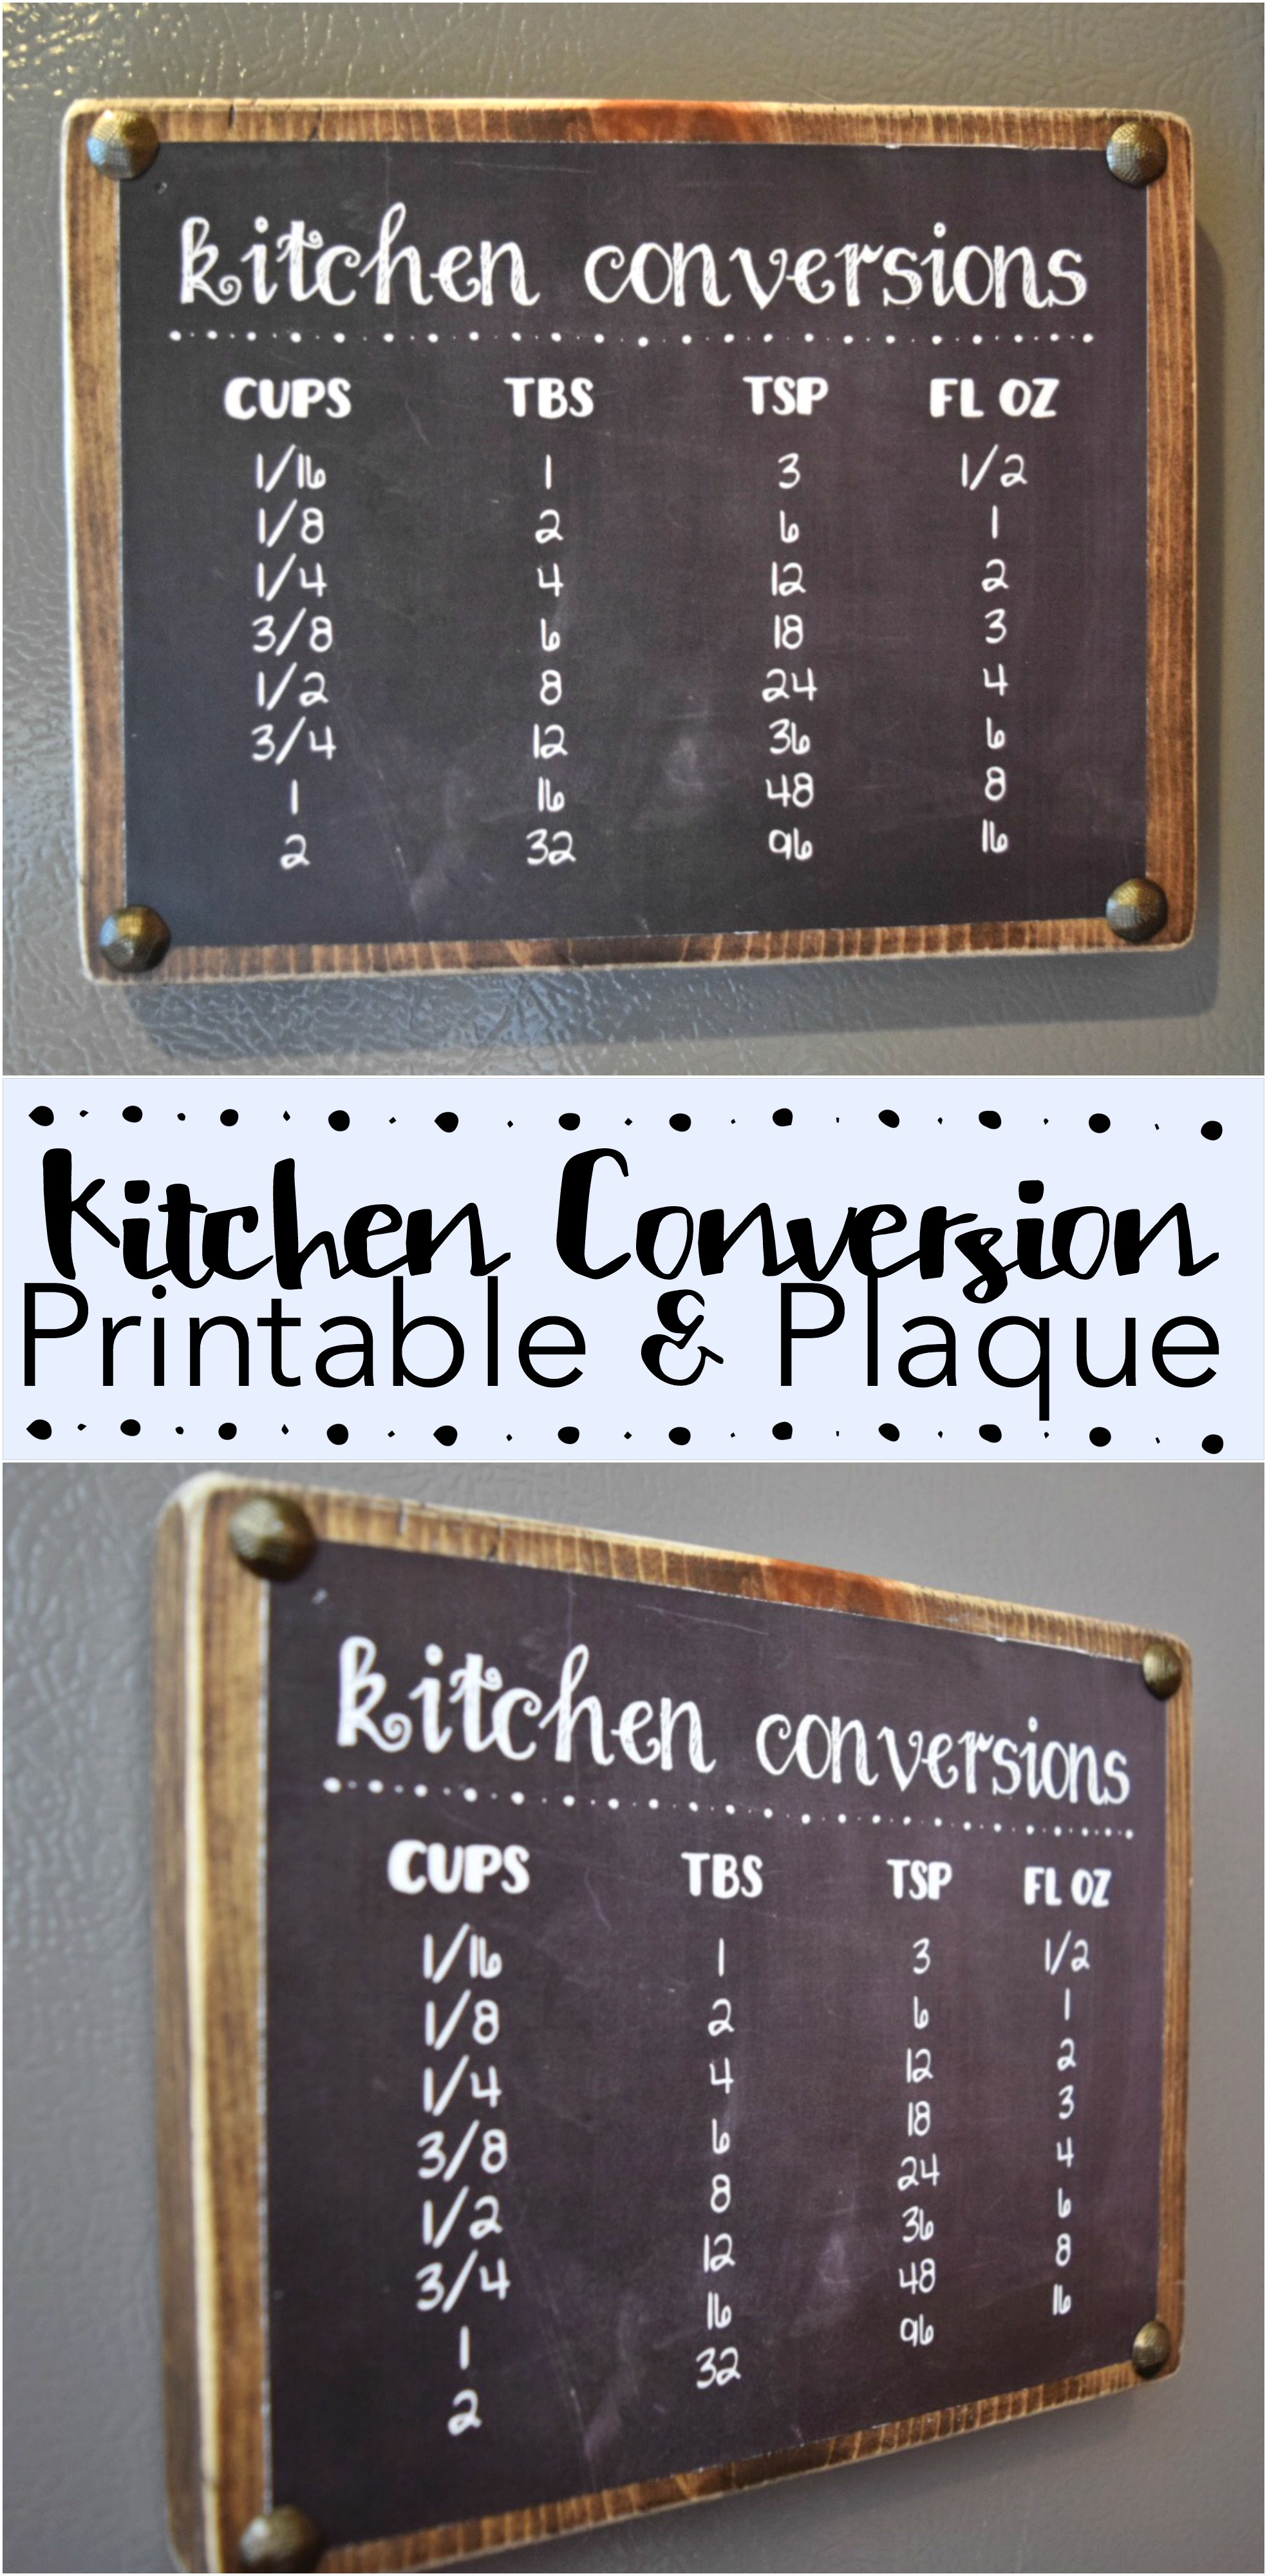 Get help in the kitchen with this CUTE Kitchen Conversion Printable and Plaque DIY. Great gift for moms or a house warming gift. Get the printable FREE for a limited time!